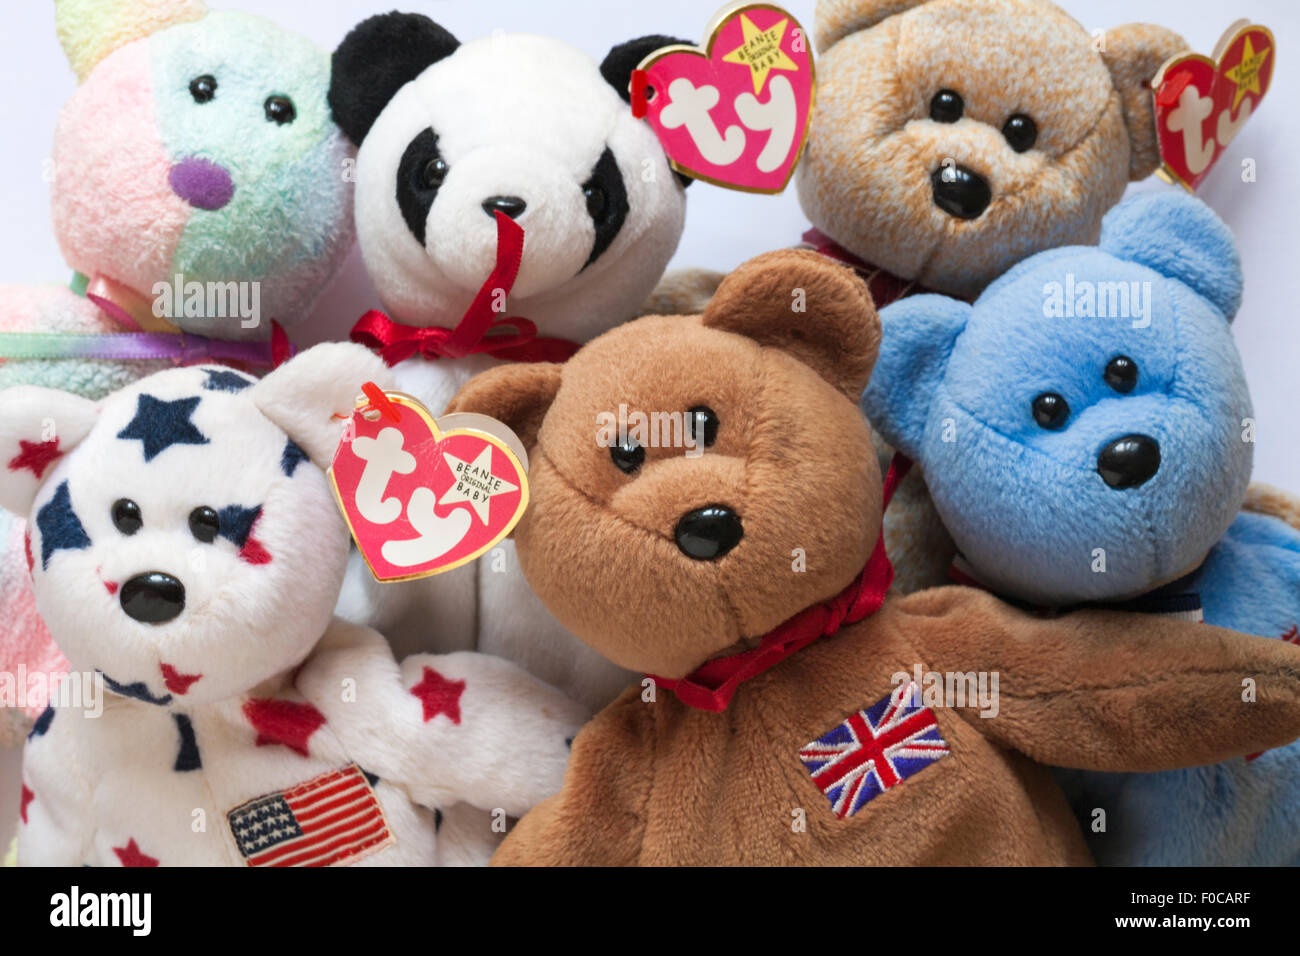 a0c6d32fe51 selection of ty original beanie baby teddy bears set on white background -  Stock Image